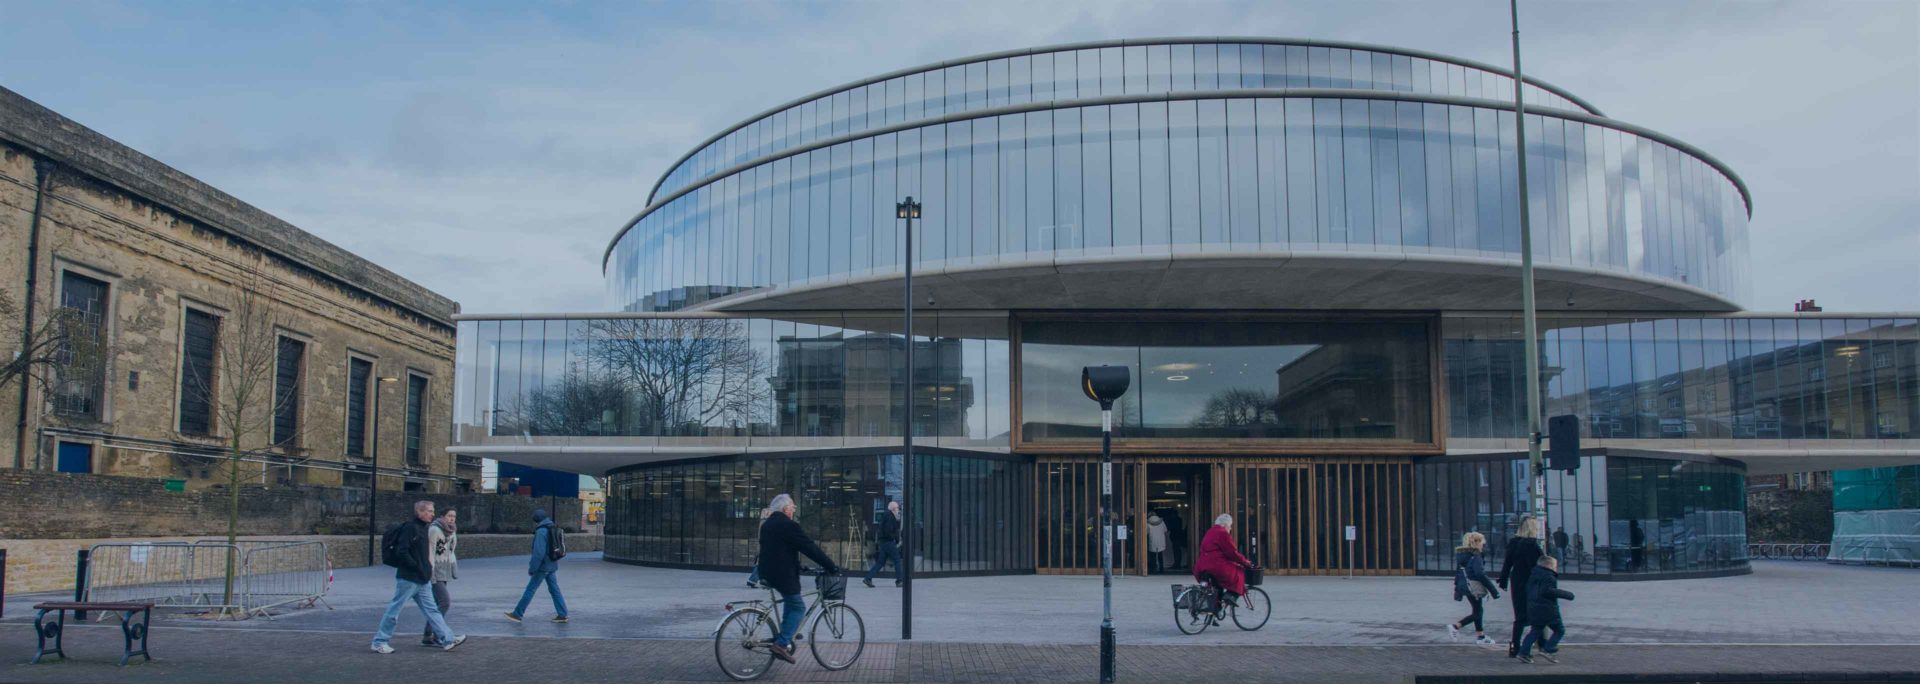 the-blavatnik-school-of-government-2